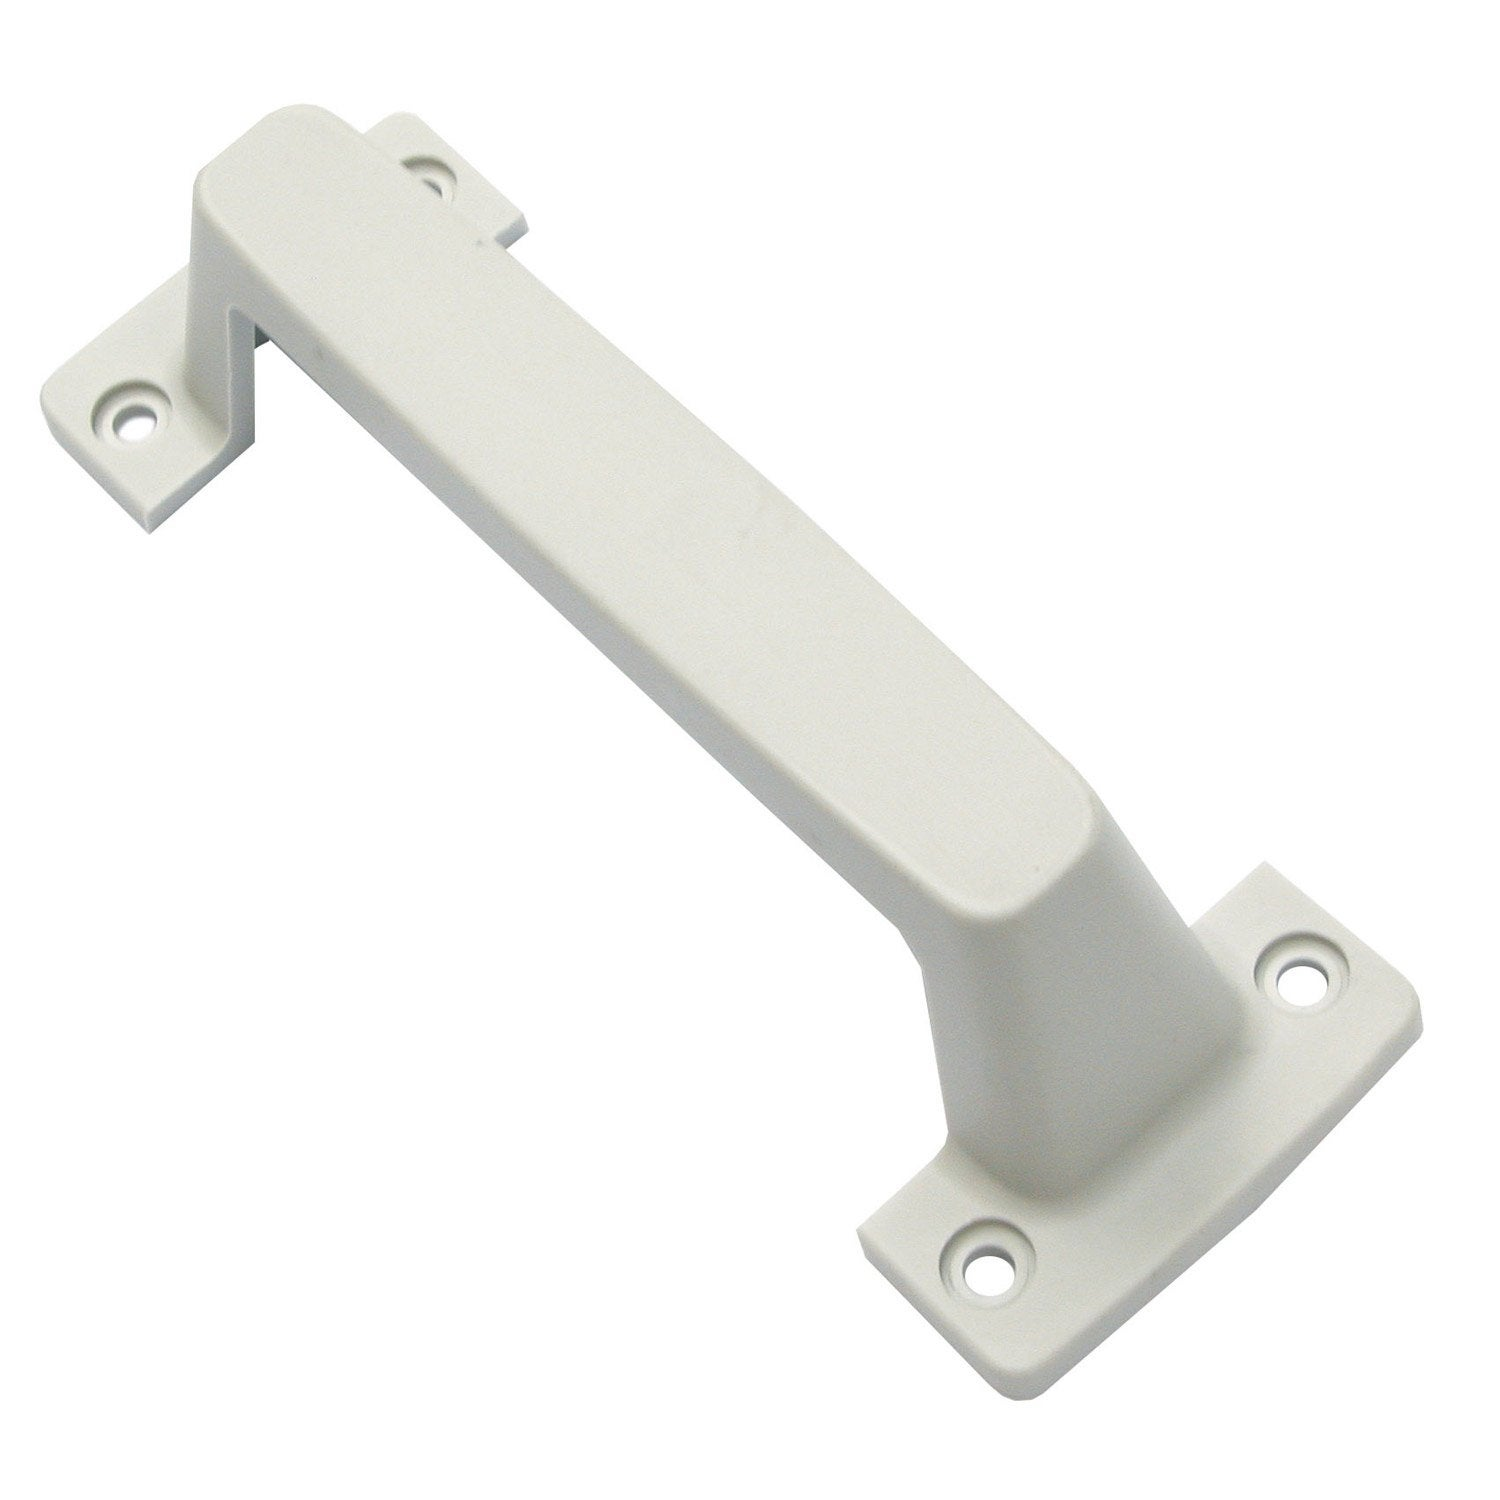 Porte pvc leroy merlin for Porte 63cm leroy merlin